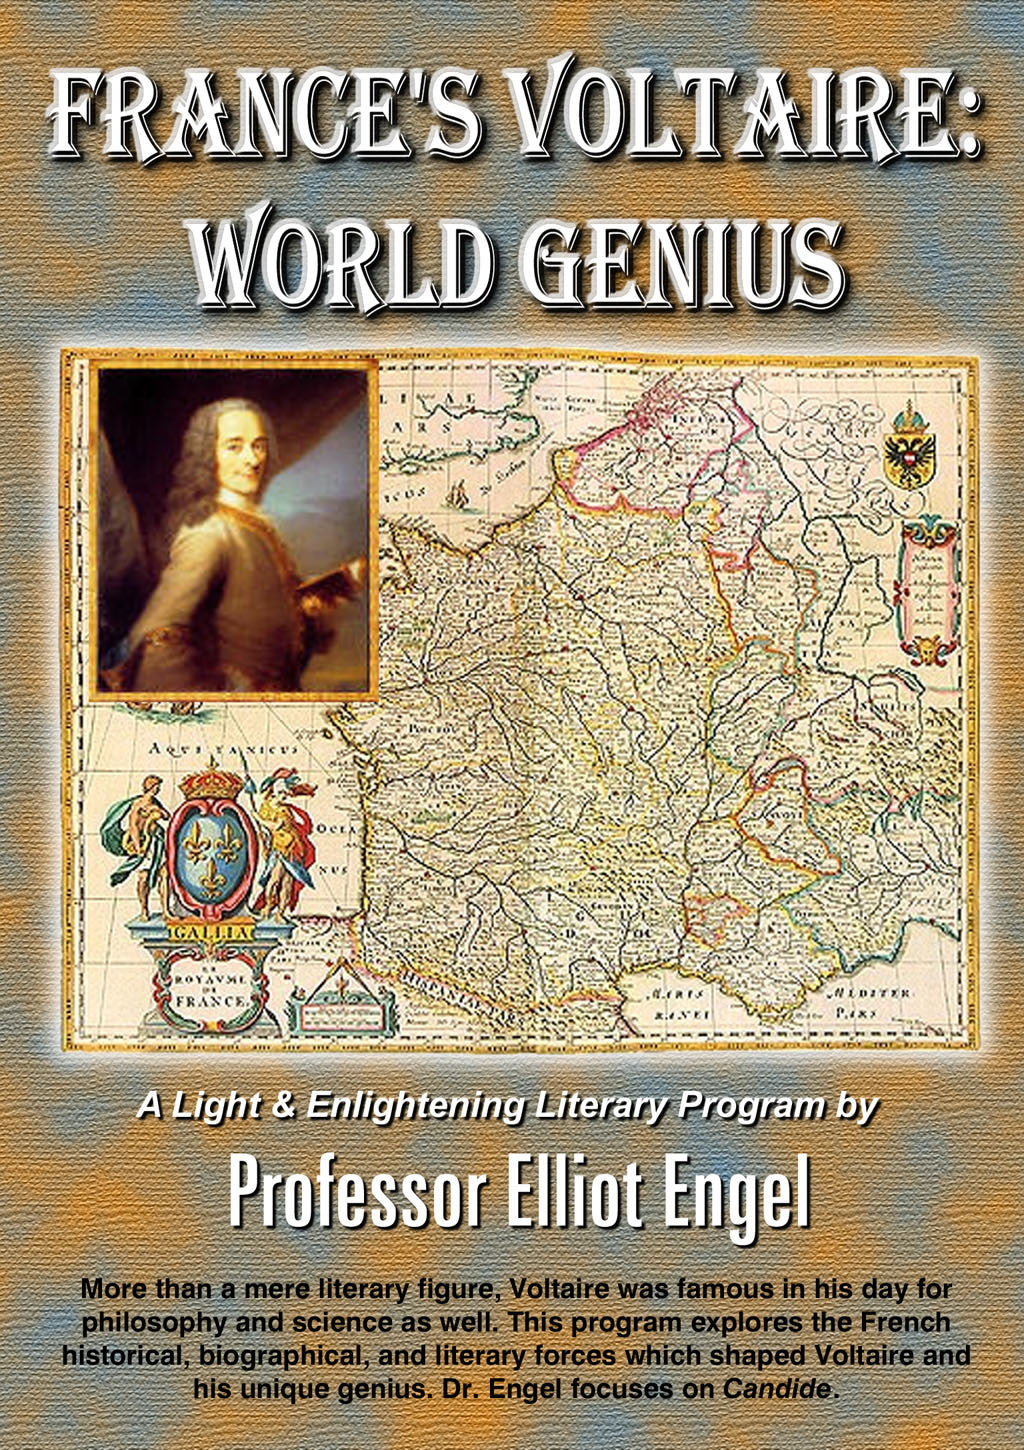 France's Voltaire: World Genius